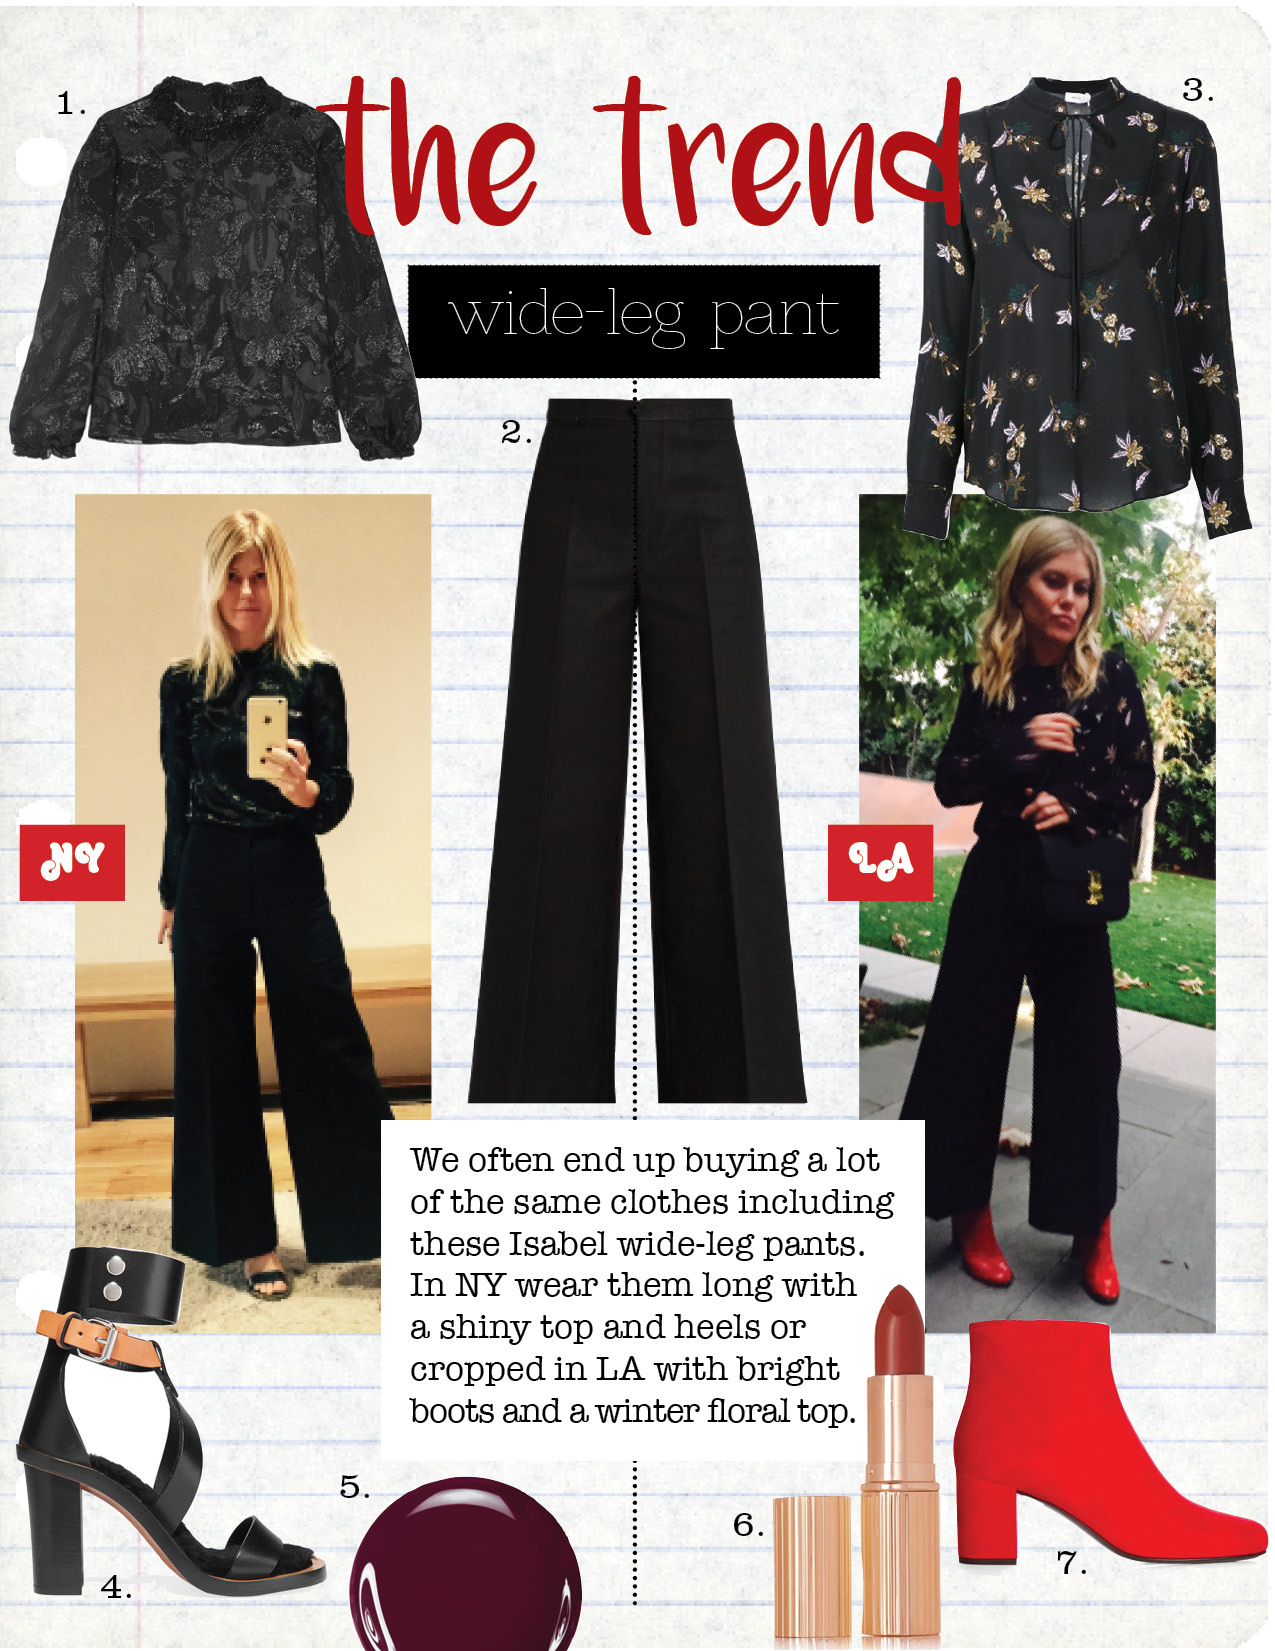 1. isabel Marant udell ruffle-trimmed fil coupe top, $366,  net-a-porter.com  2. isabel marant wide-leg cropped trousers, $336,  matchesfashion.com  3. a.l.c. annaleigh silk ruffle yoke top, $225,  lyst.com  4. isabel marant jenyd shearling-lined leather sandals, $483,  net-a-porter.com  5. tom ford nail lacquer - plum noir, $36,  tomford.com  6. charlotte tilbury k.i.s.s.i.n.g.lipstick - so marilyn, $32,  net-a-porter.com  7. saint laurent babies block-heel suede ankle boots, $845,  matchesfashion.com